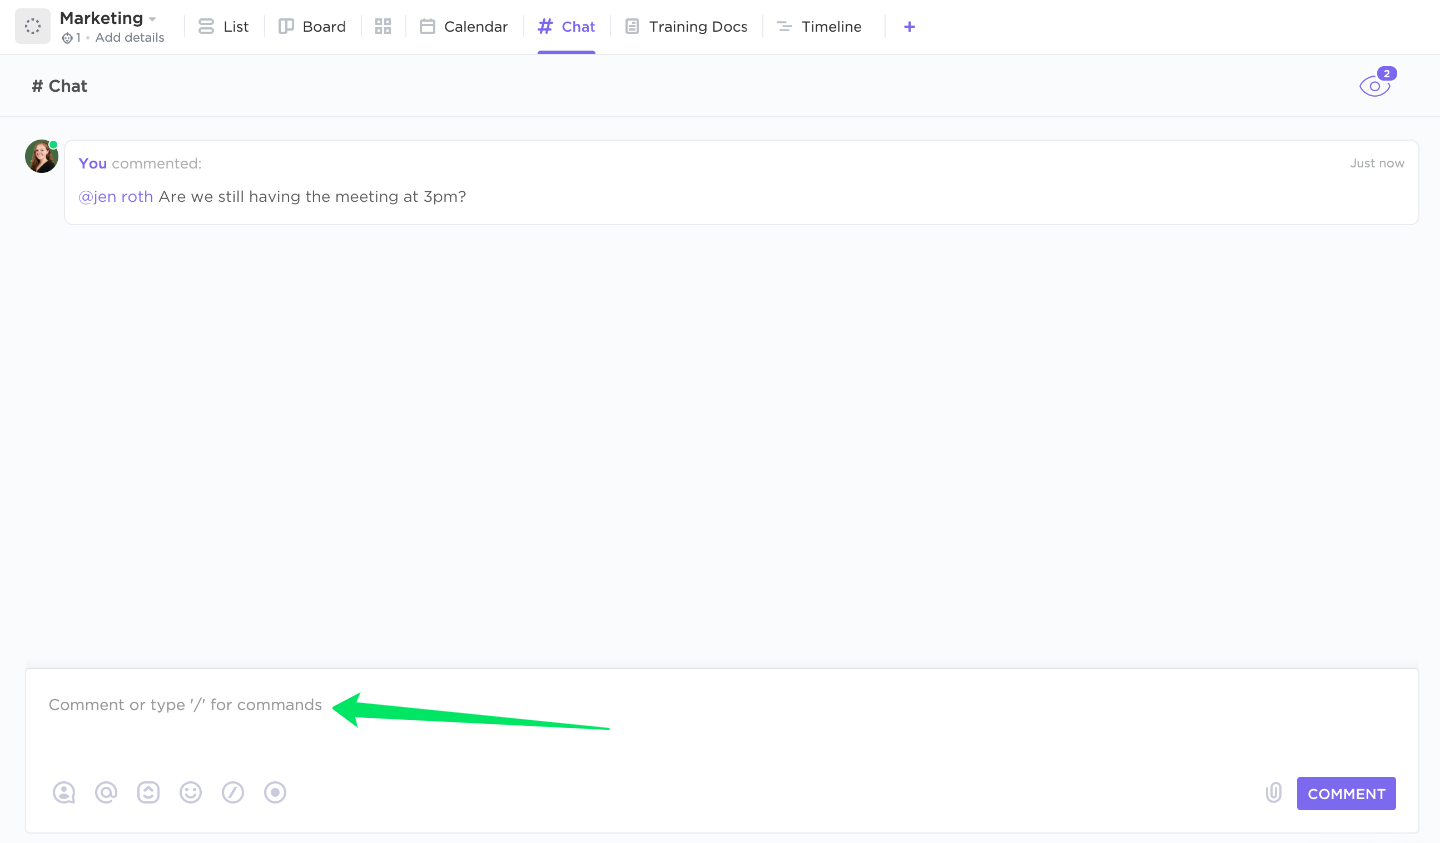 arrow pointing to where you can start a comment in Chat view